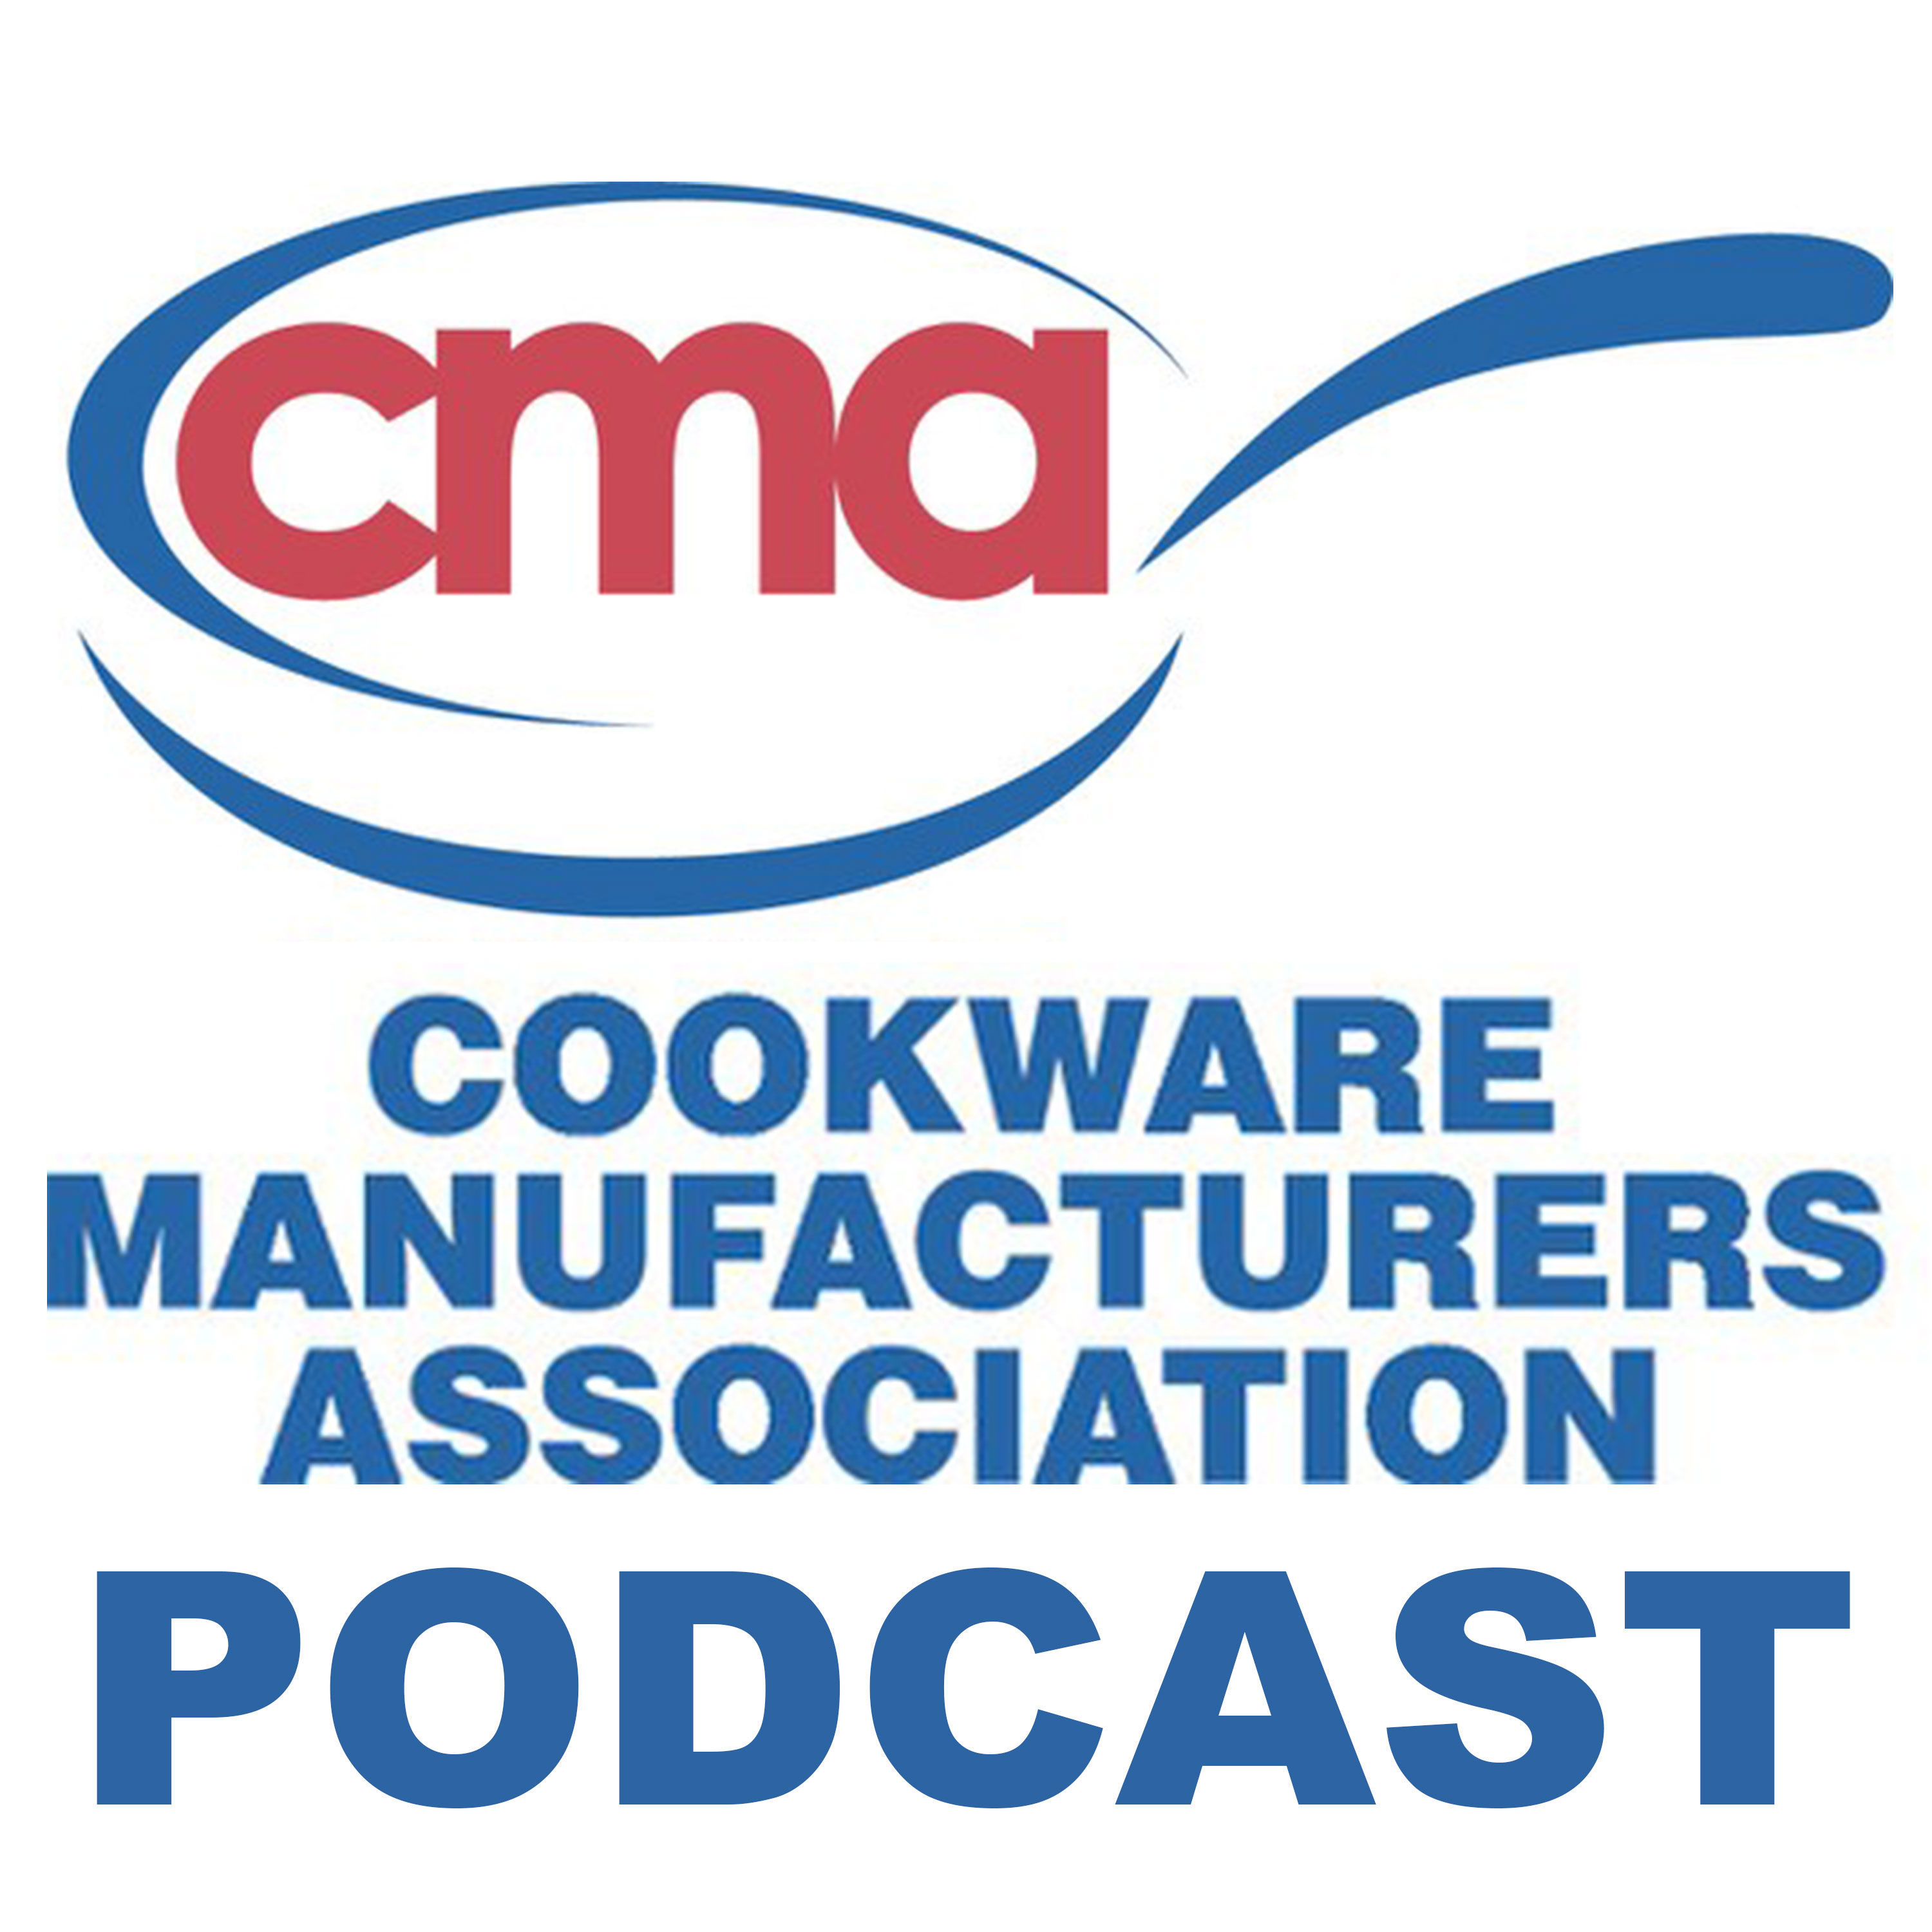 005: Kate Delaney Explains Why Cookware Manufacturers Should